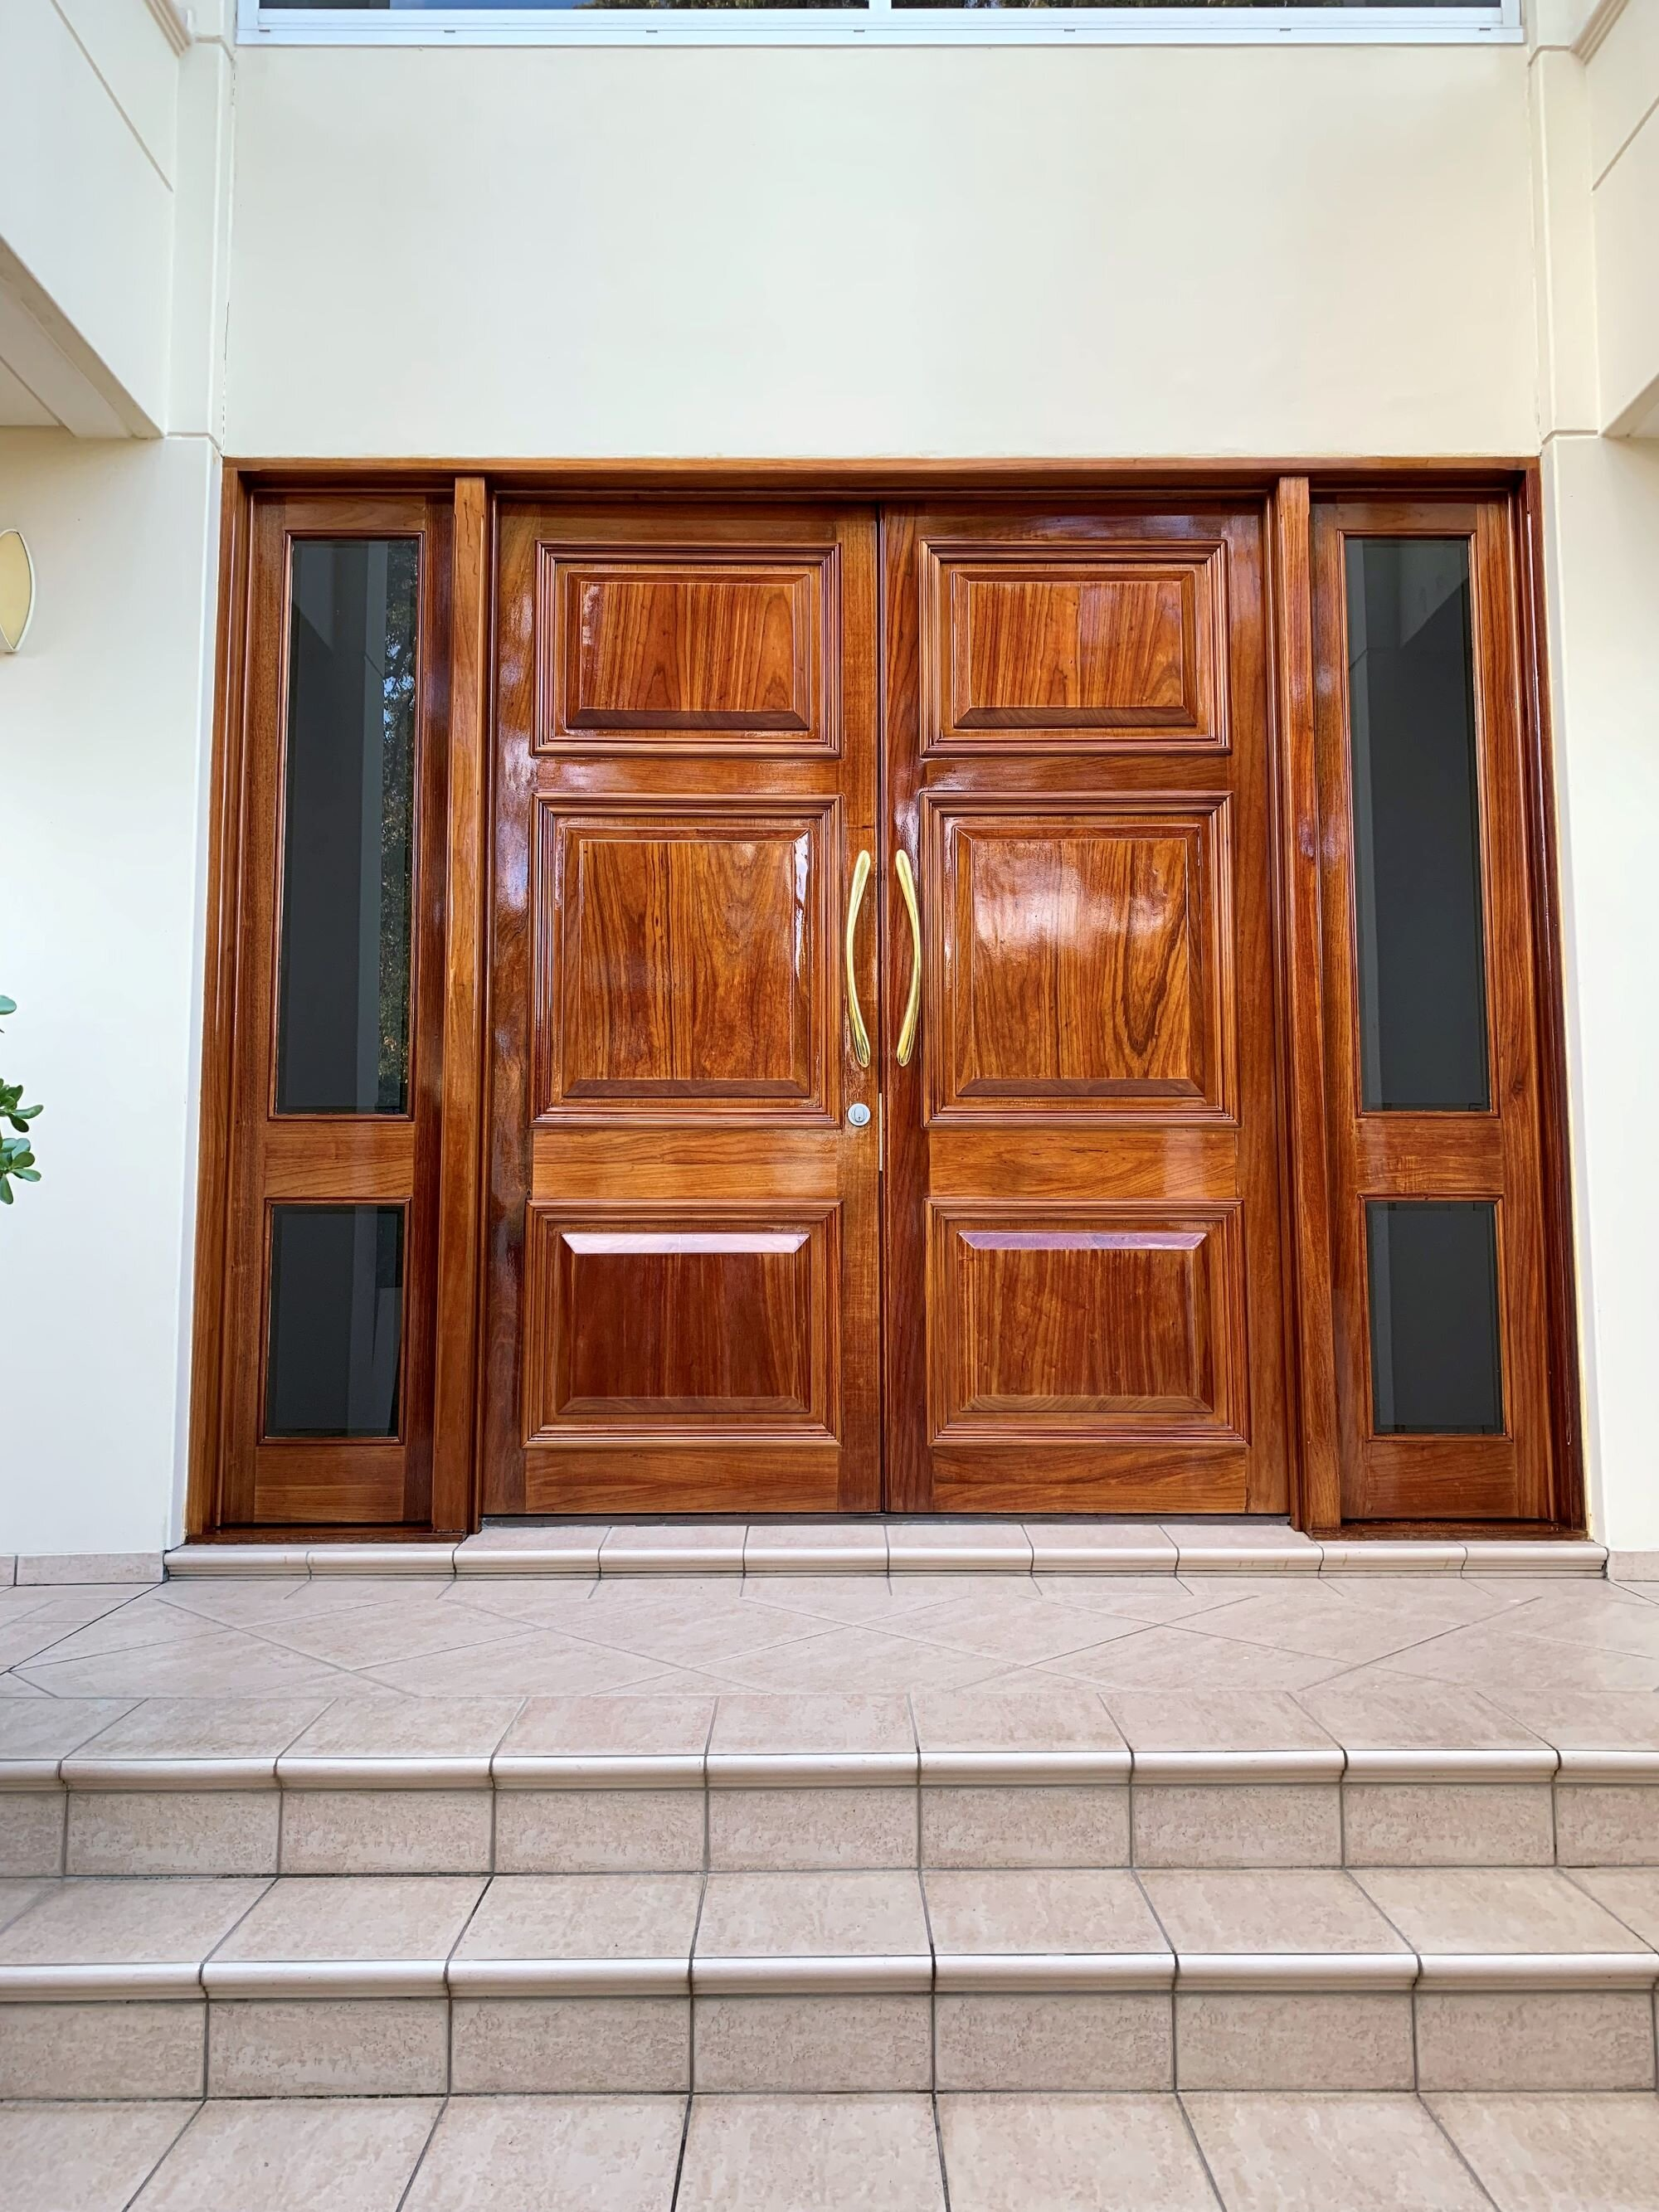 cedar doors after restoration.jpg